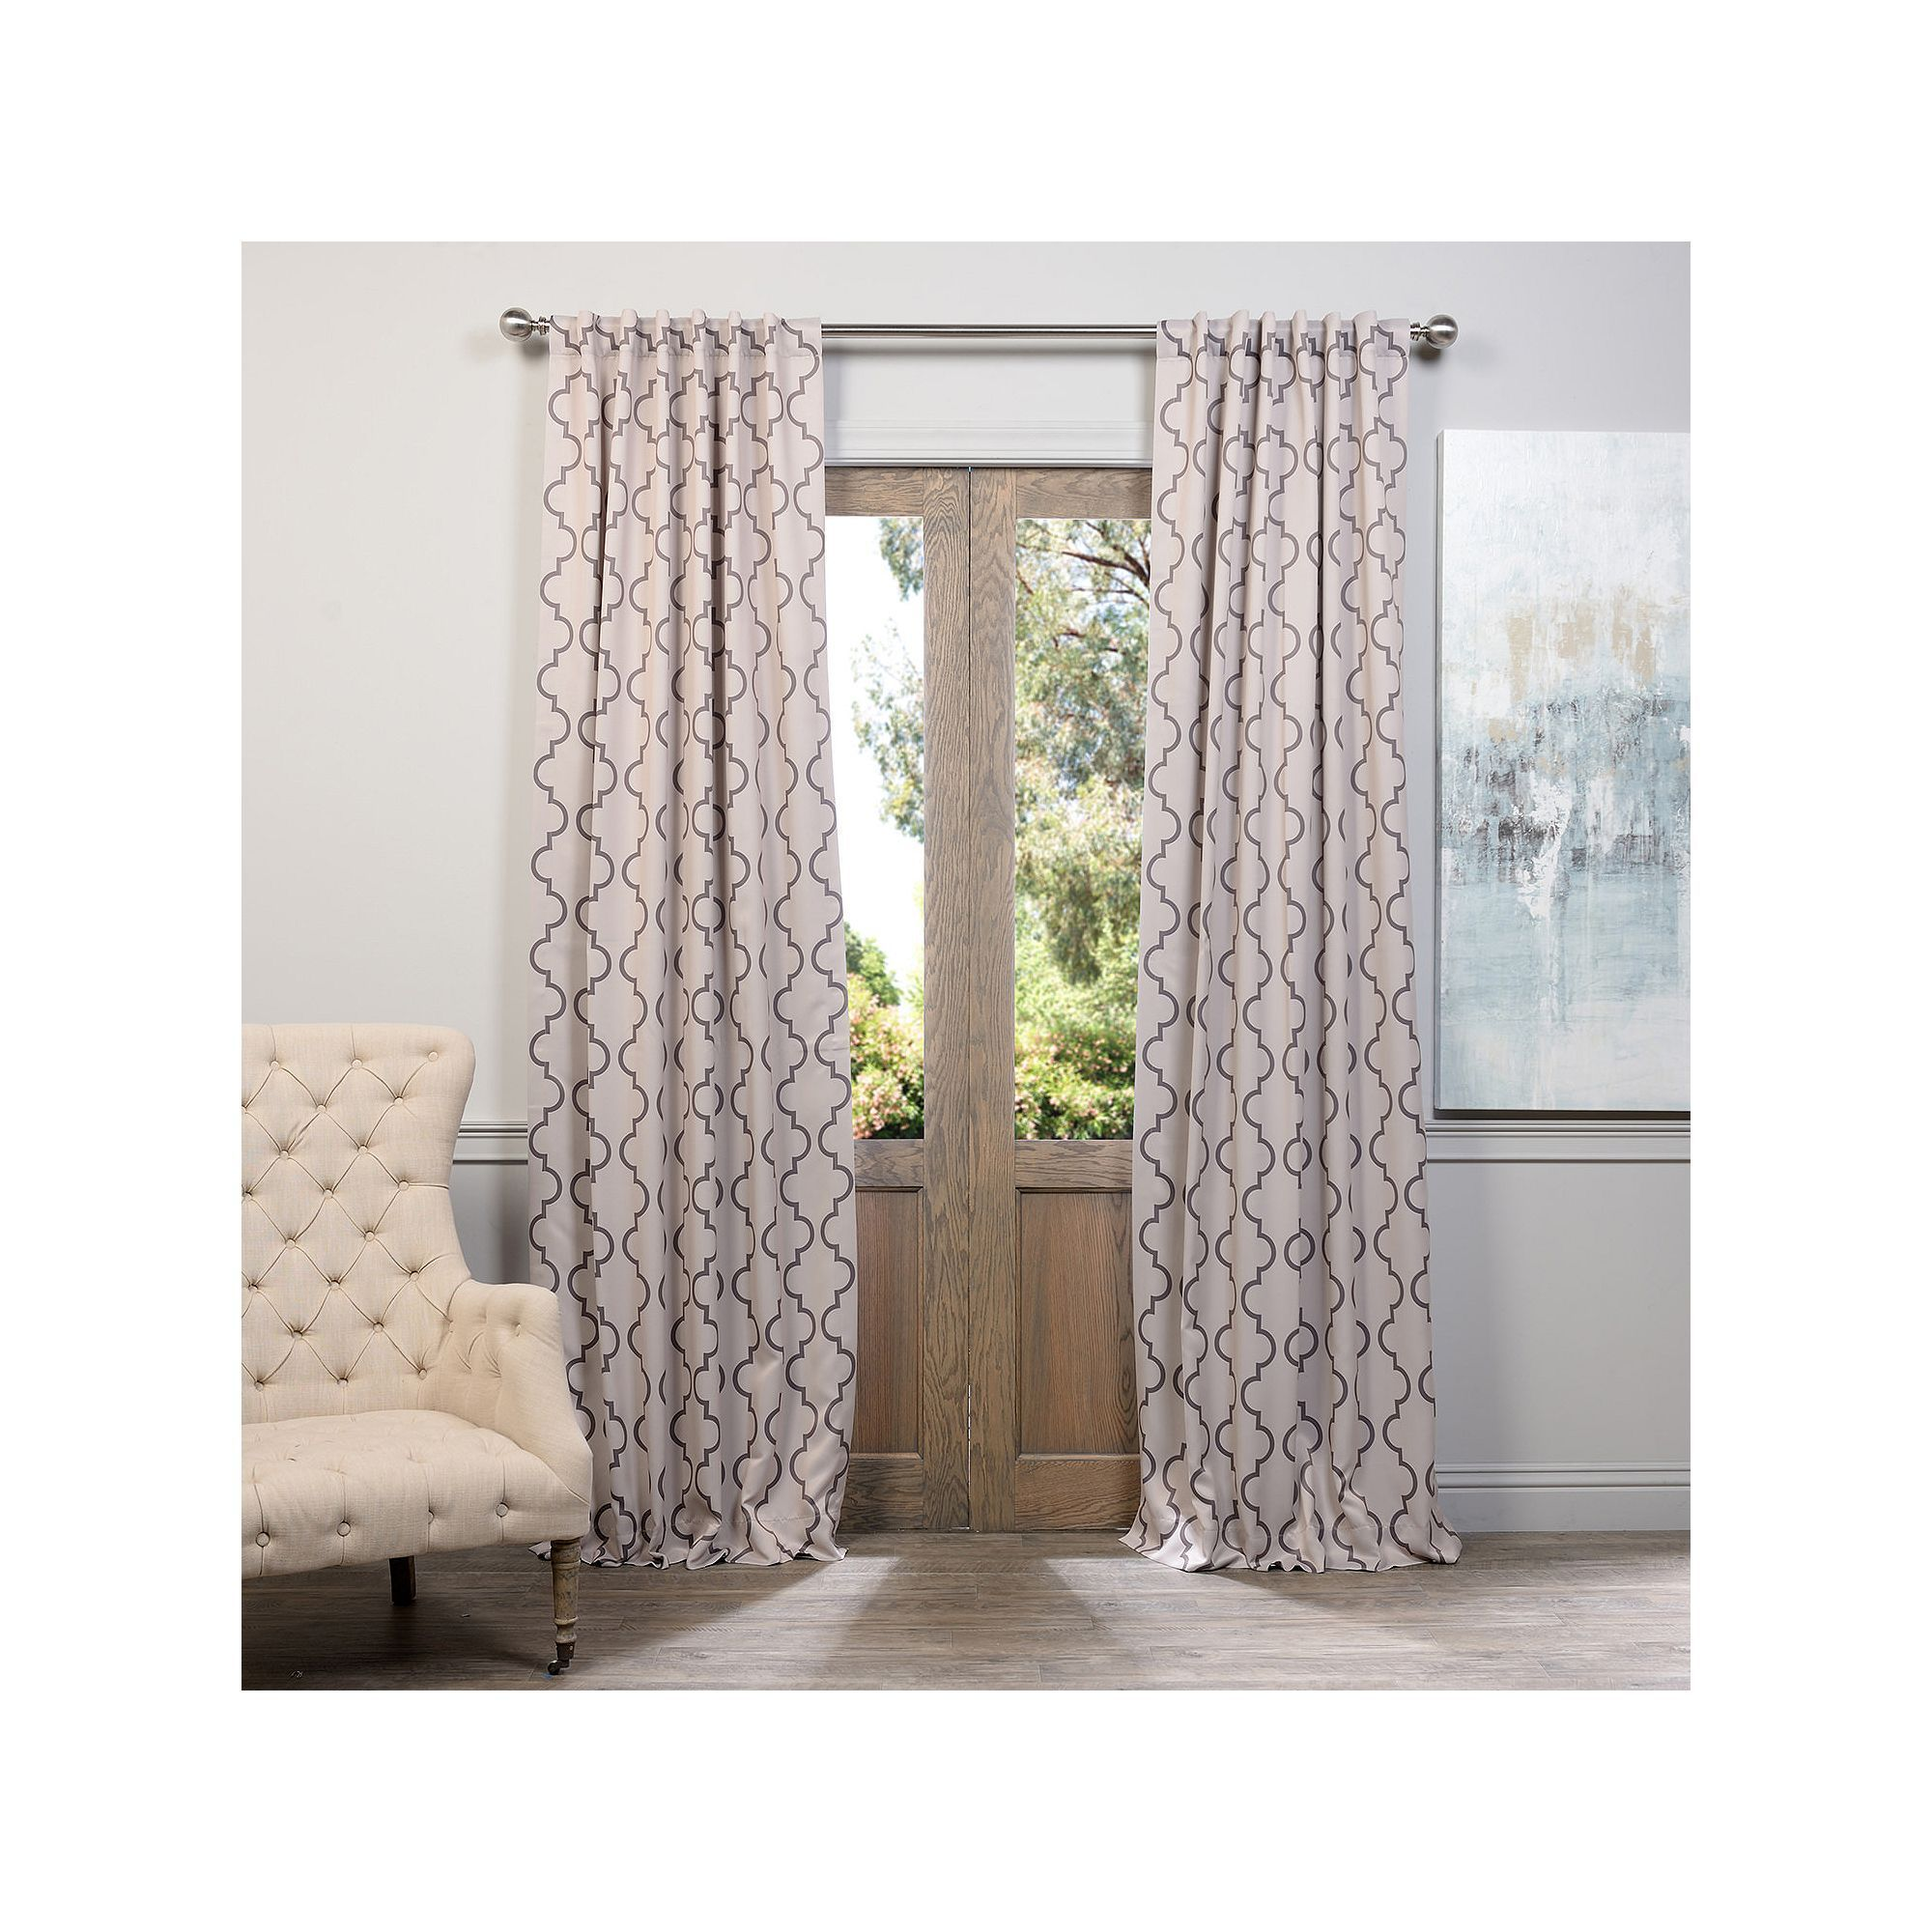 Printed curtains living room curtains fabric projectsdouble